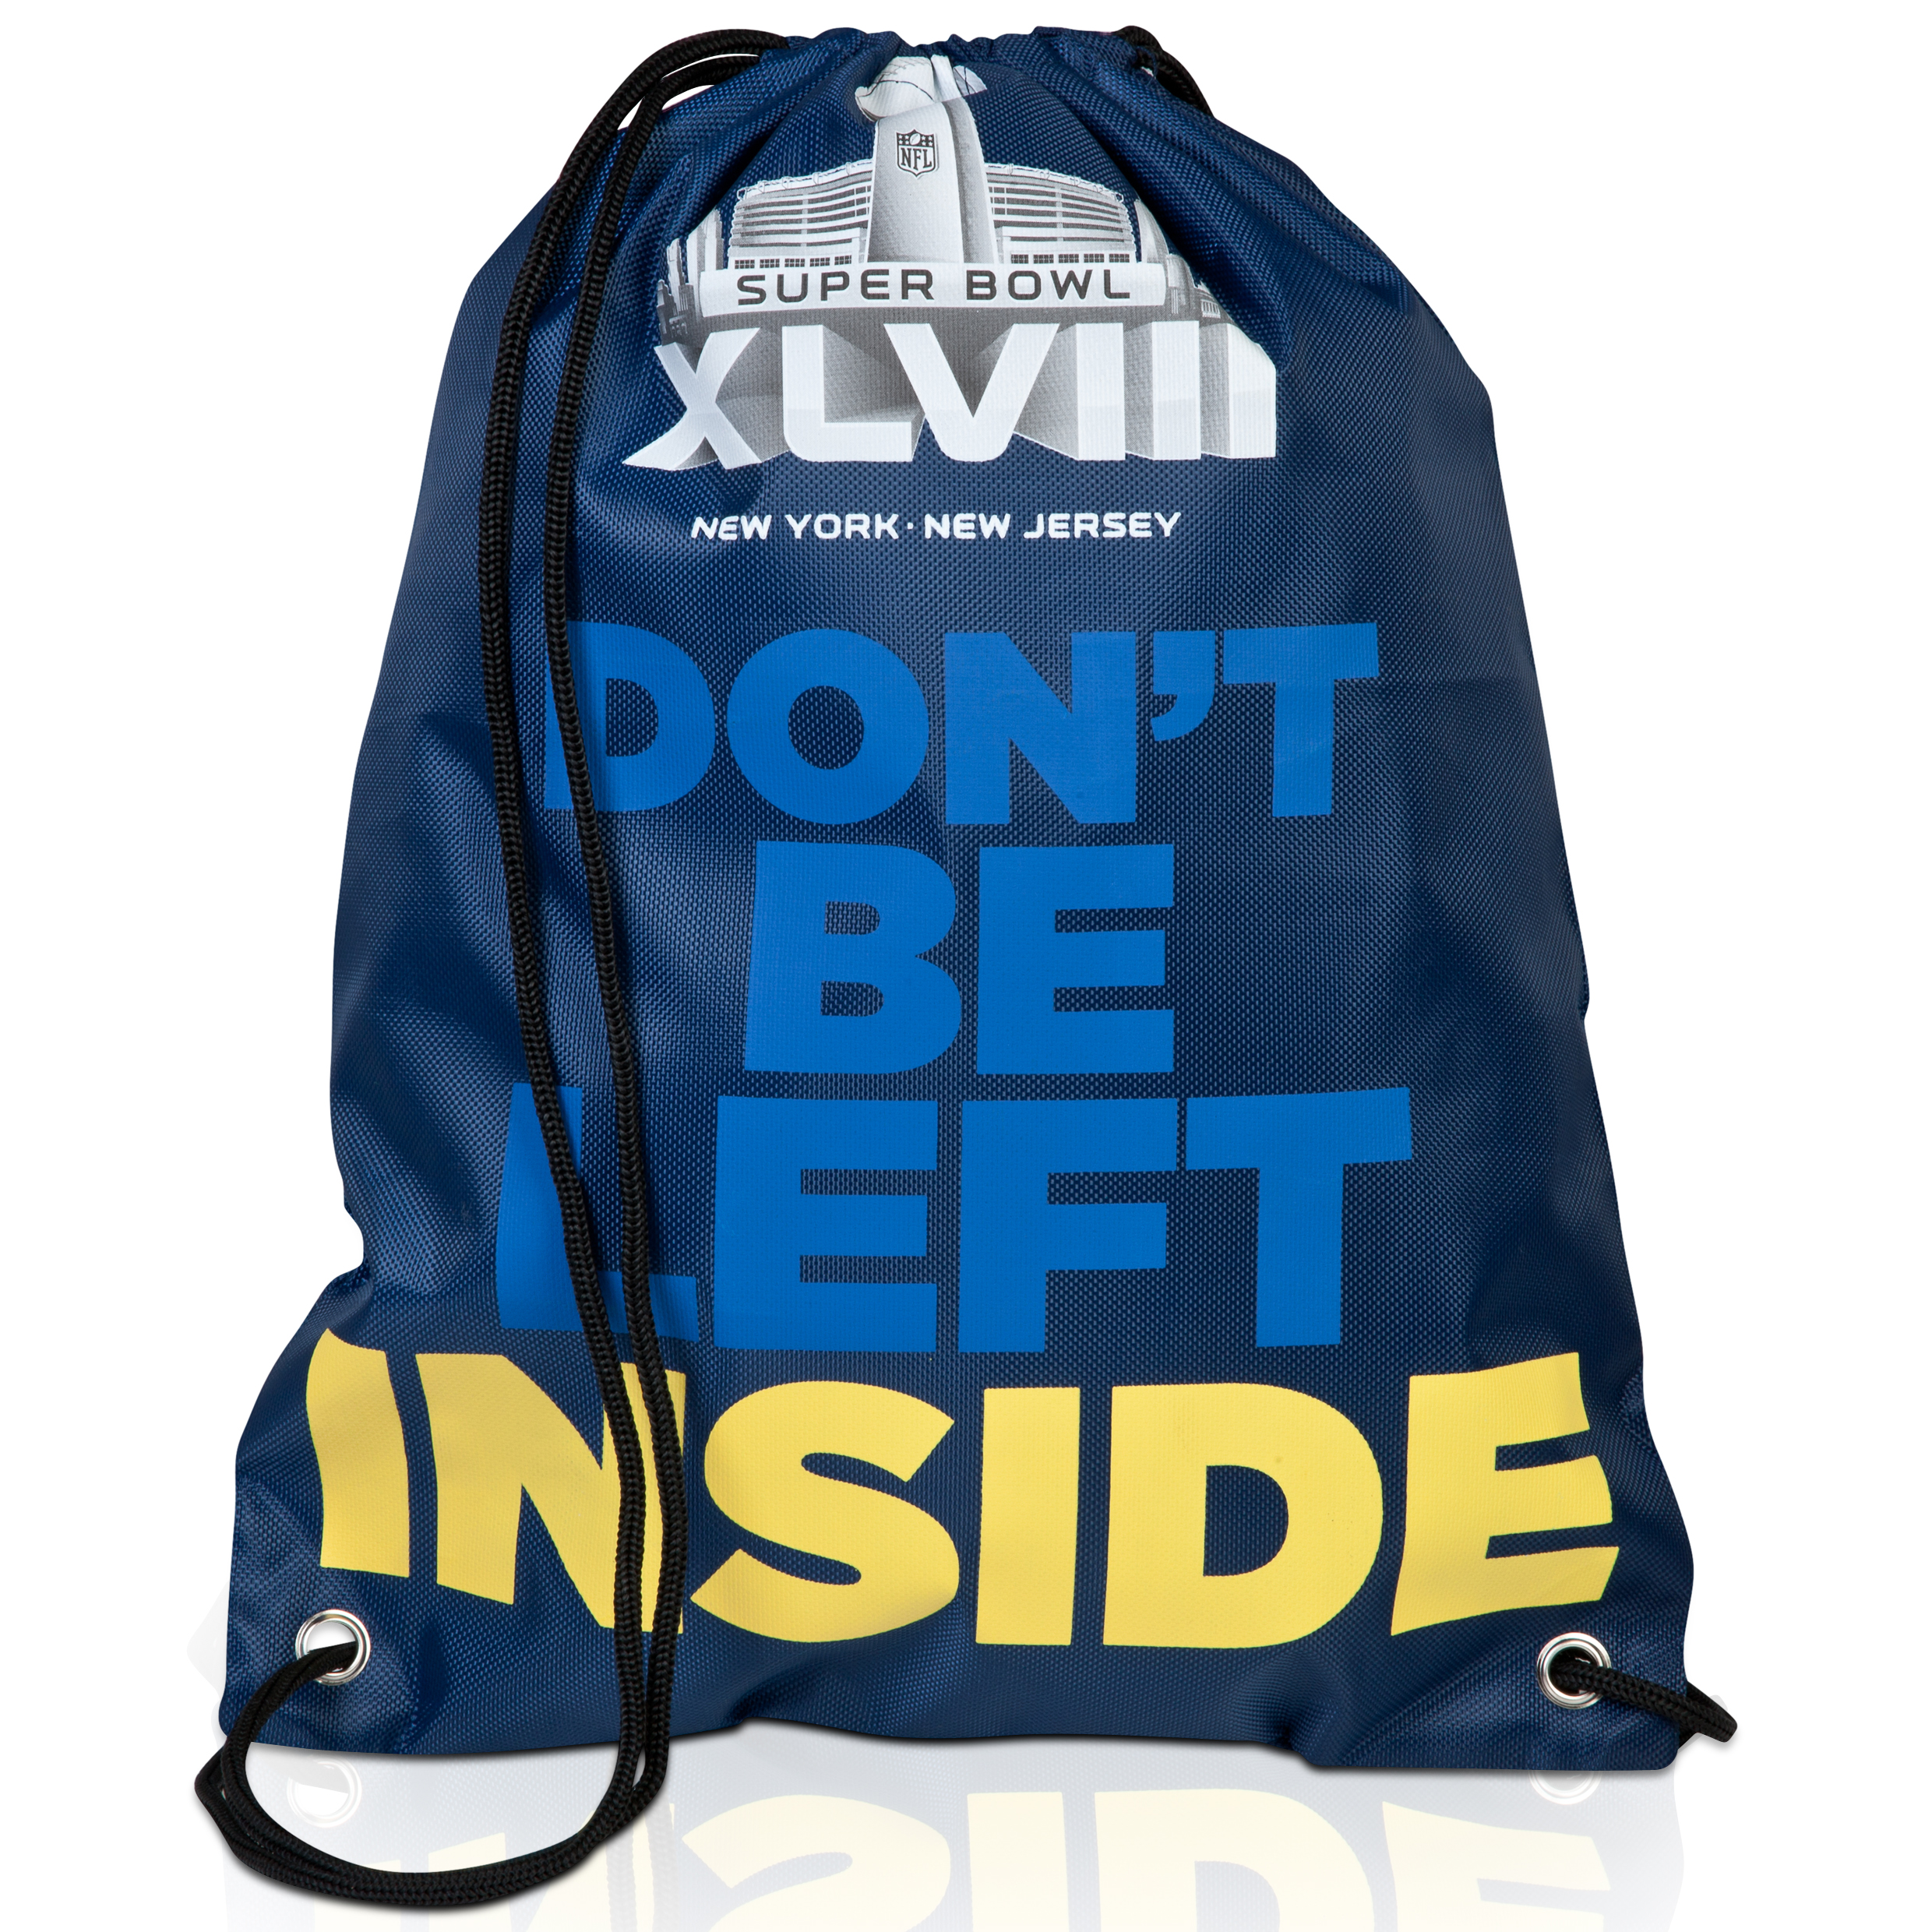 NFL Super Bowl XLVIII Drawstring Backpack